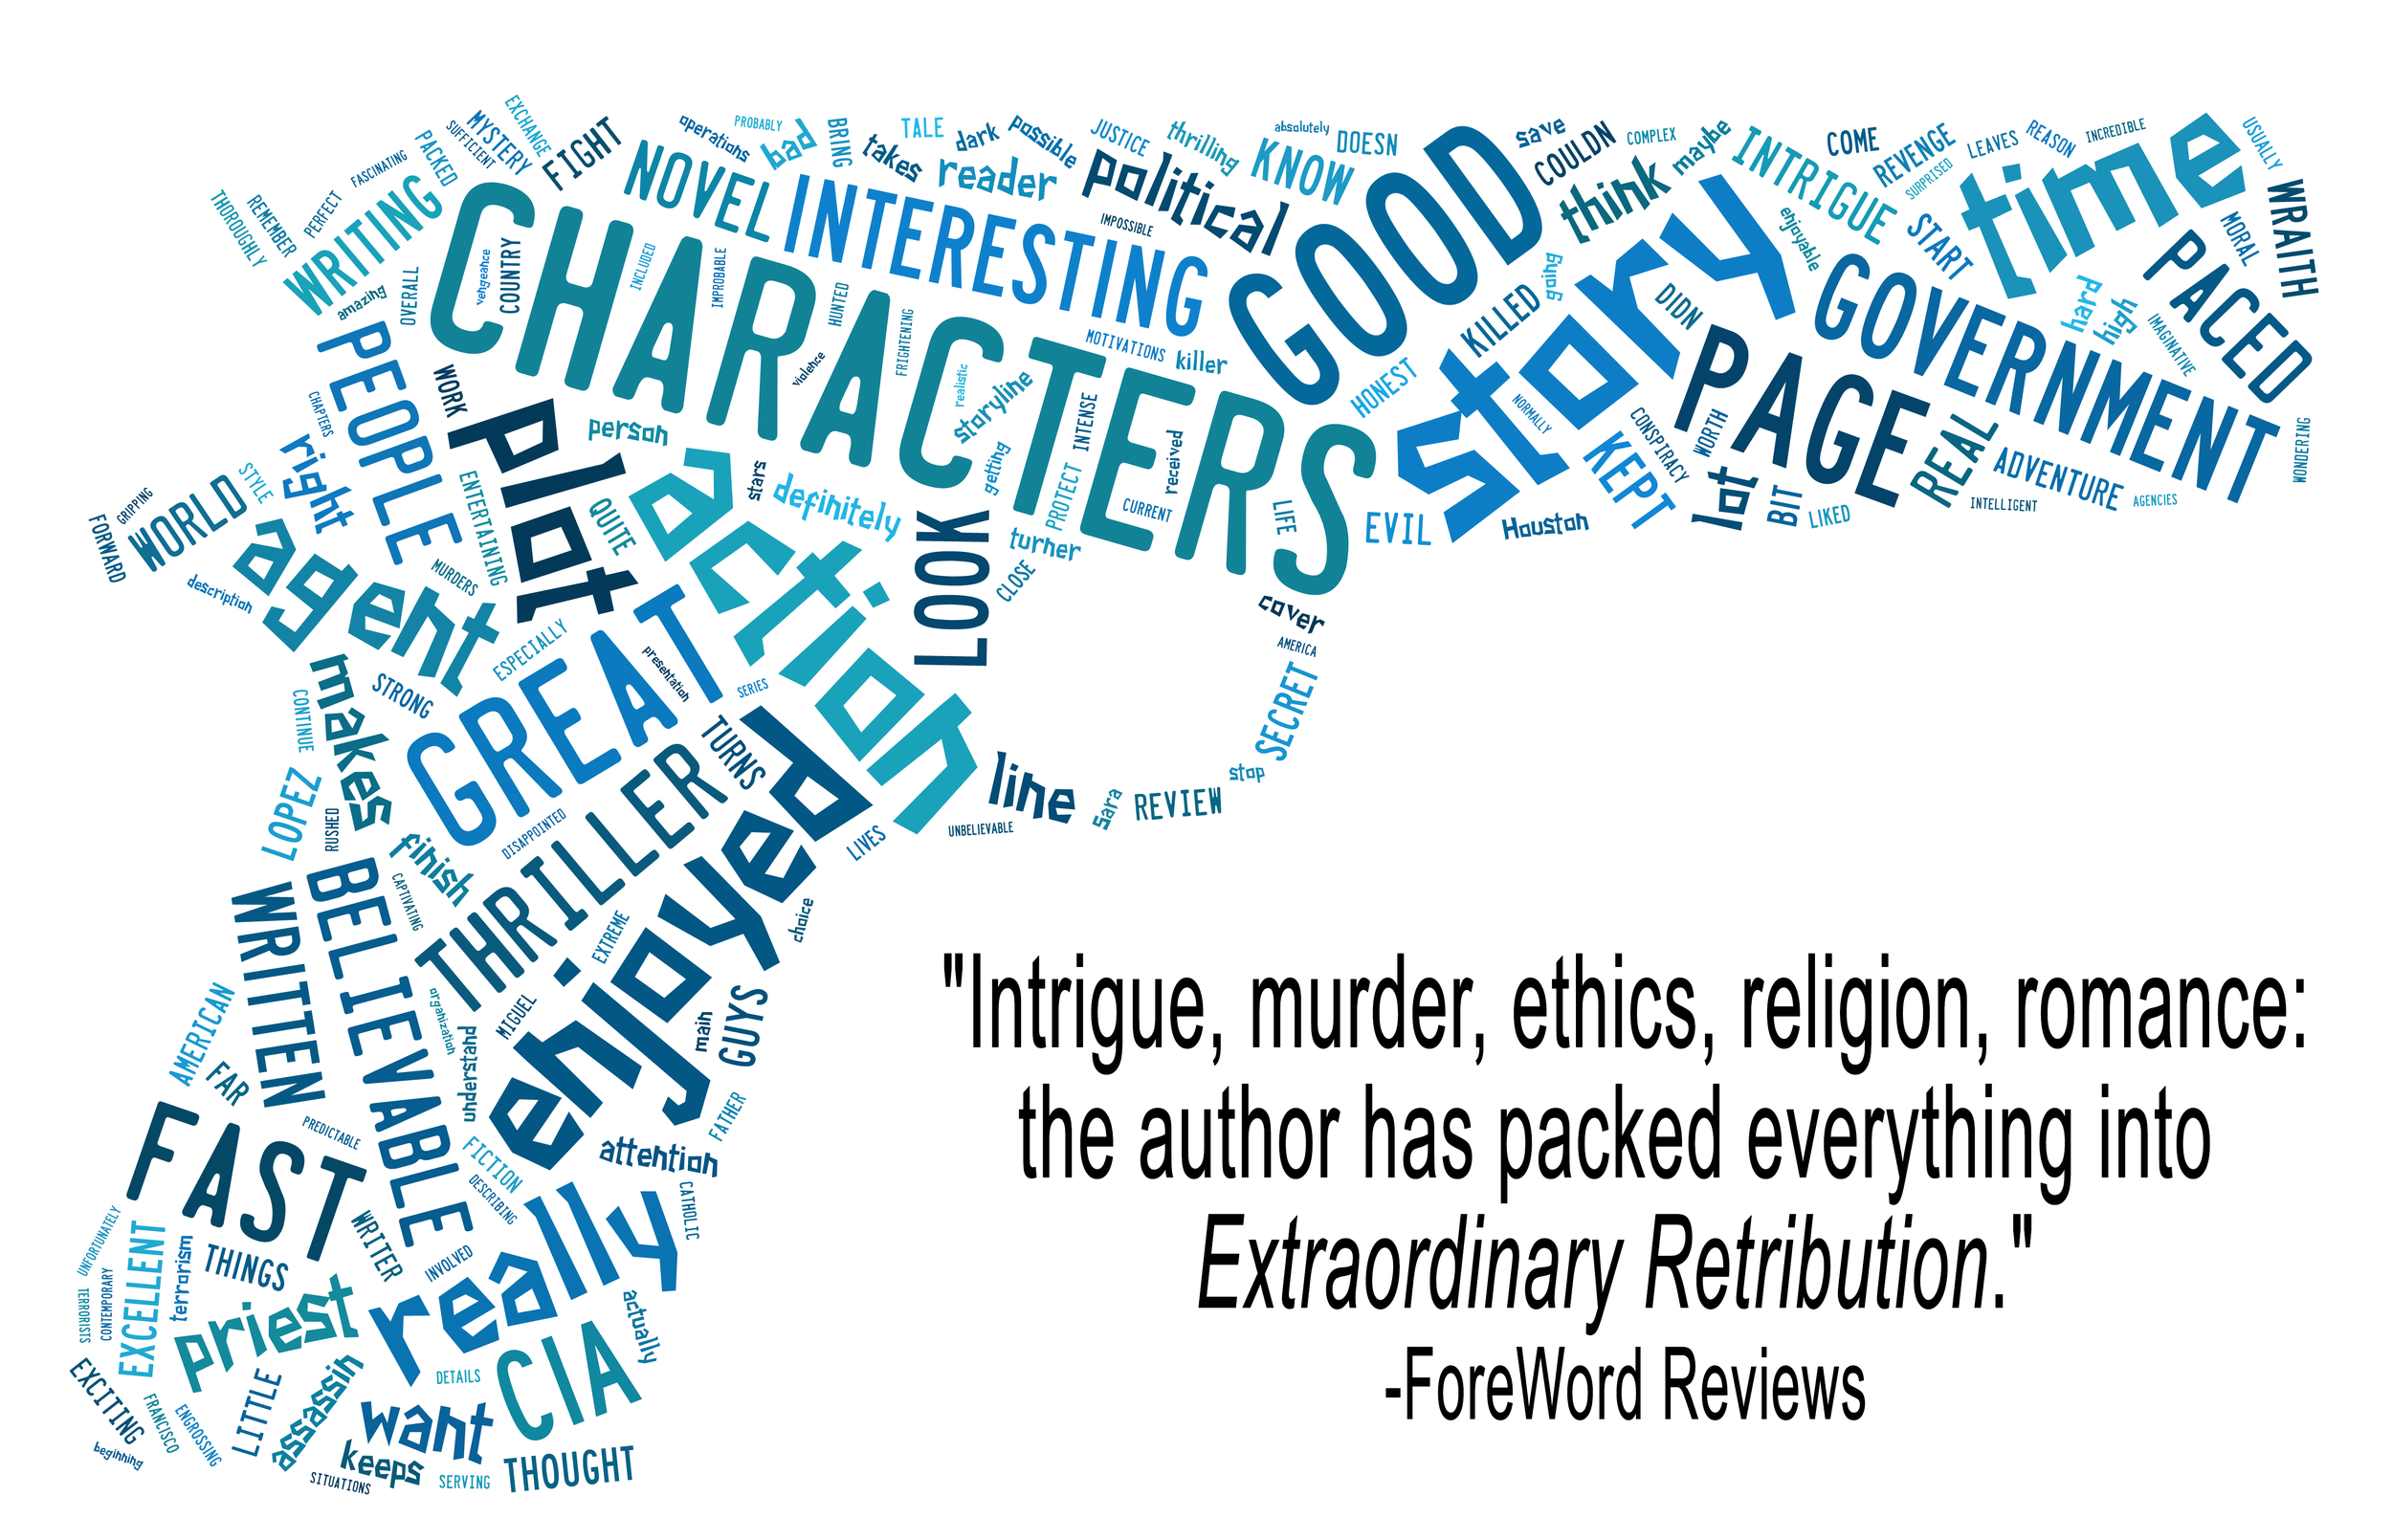 """""""Word cloud"""" of the first 200 reviews of Extraordinary Retribution on Amazon (as present April 2015). Certain words that dominated the image but which were not very informative(e.g., """"book"""", the author's name, etc) were removed."""